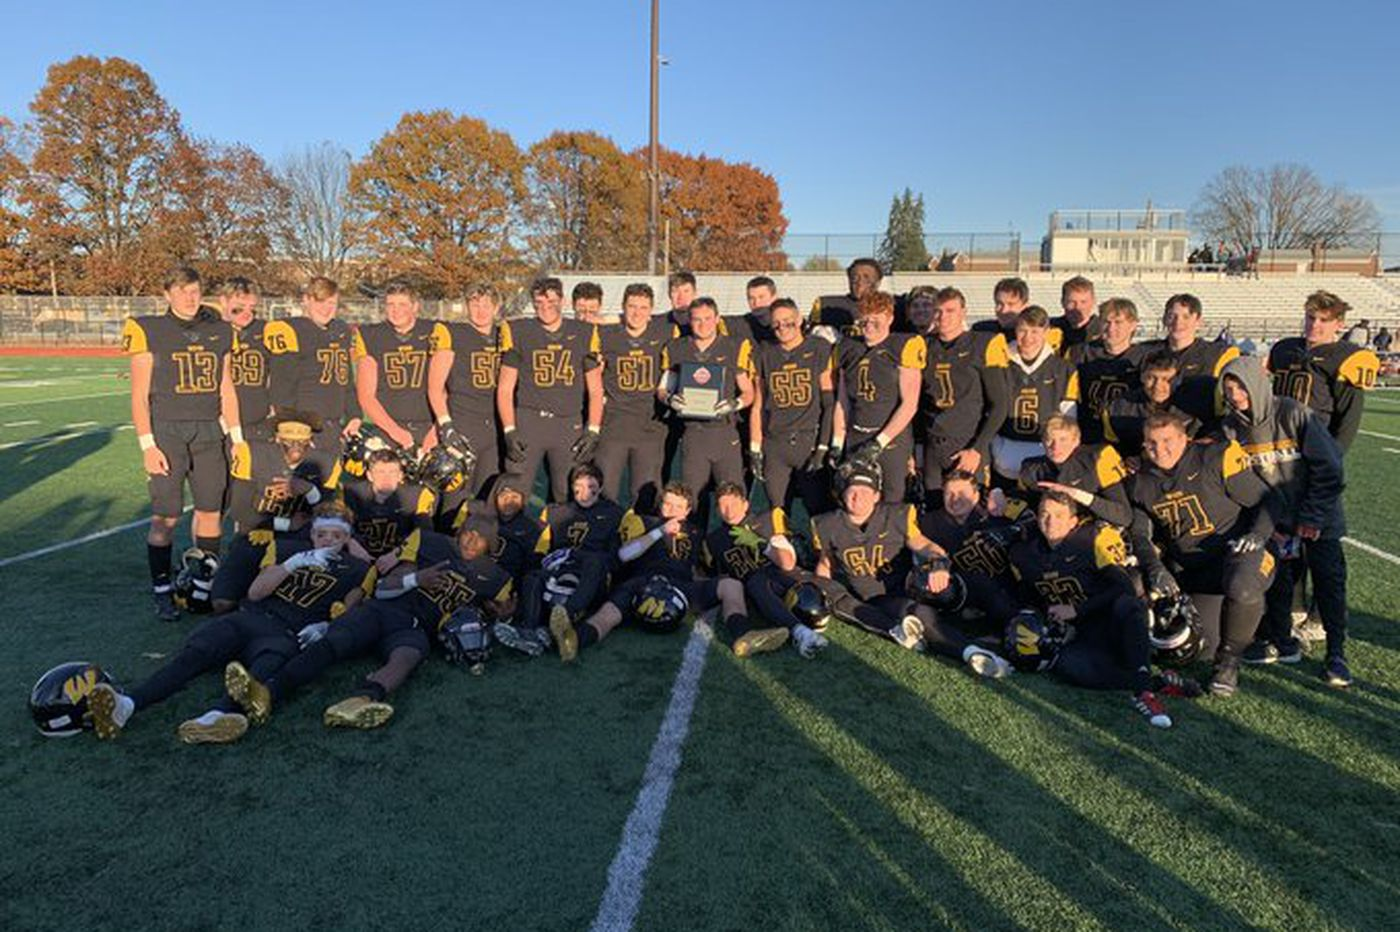 Archbishop Wood edges Gateway and will play Cheltenham in PIAA Class 5A state championship